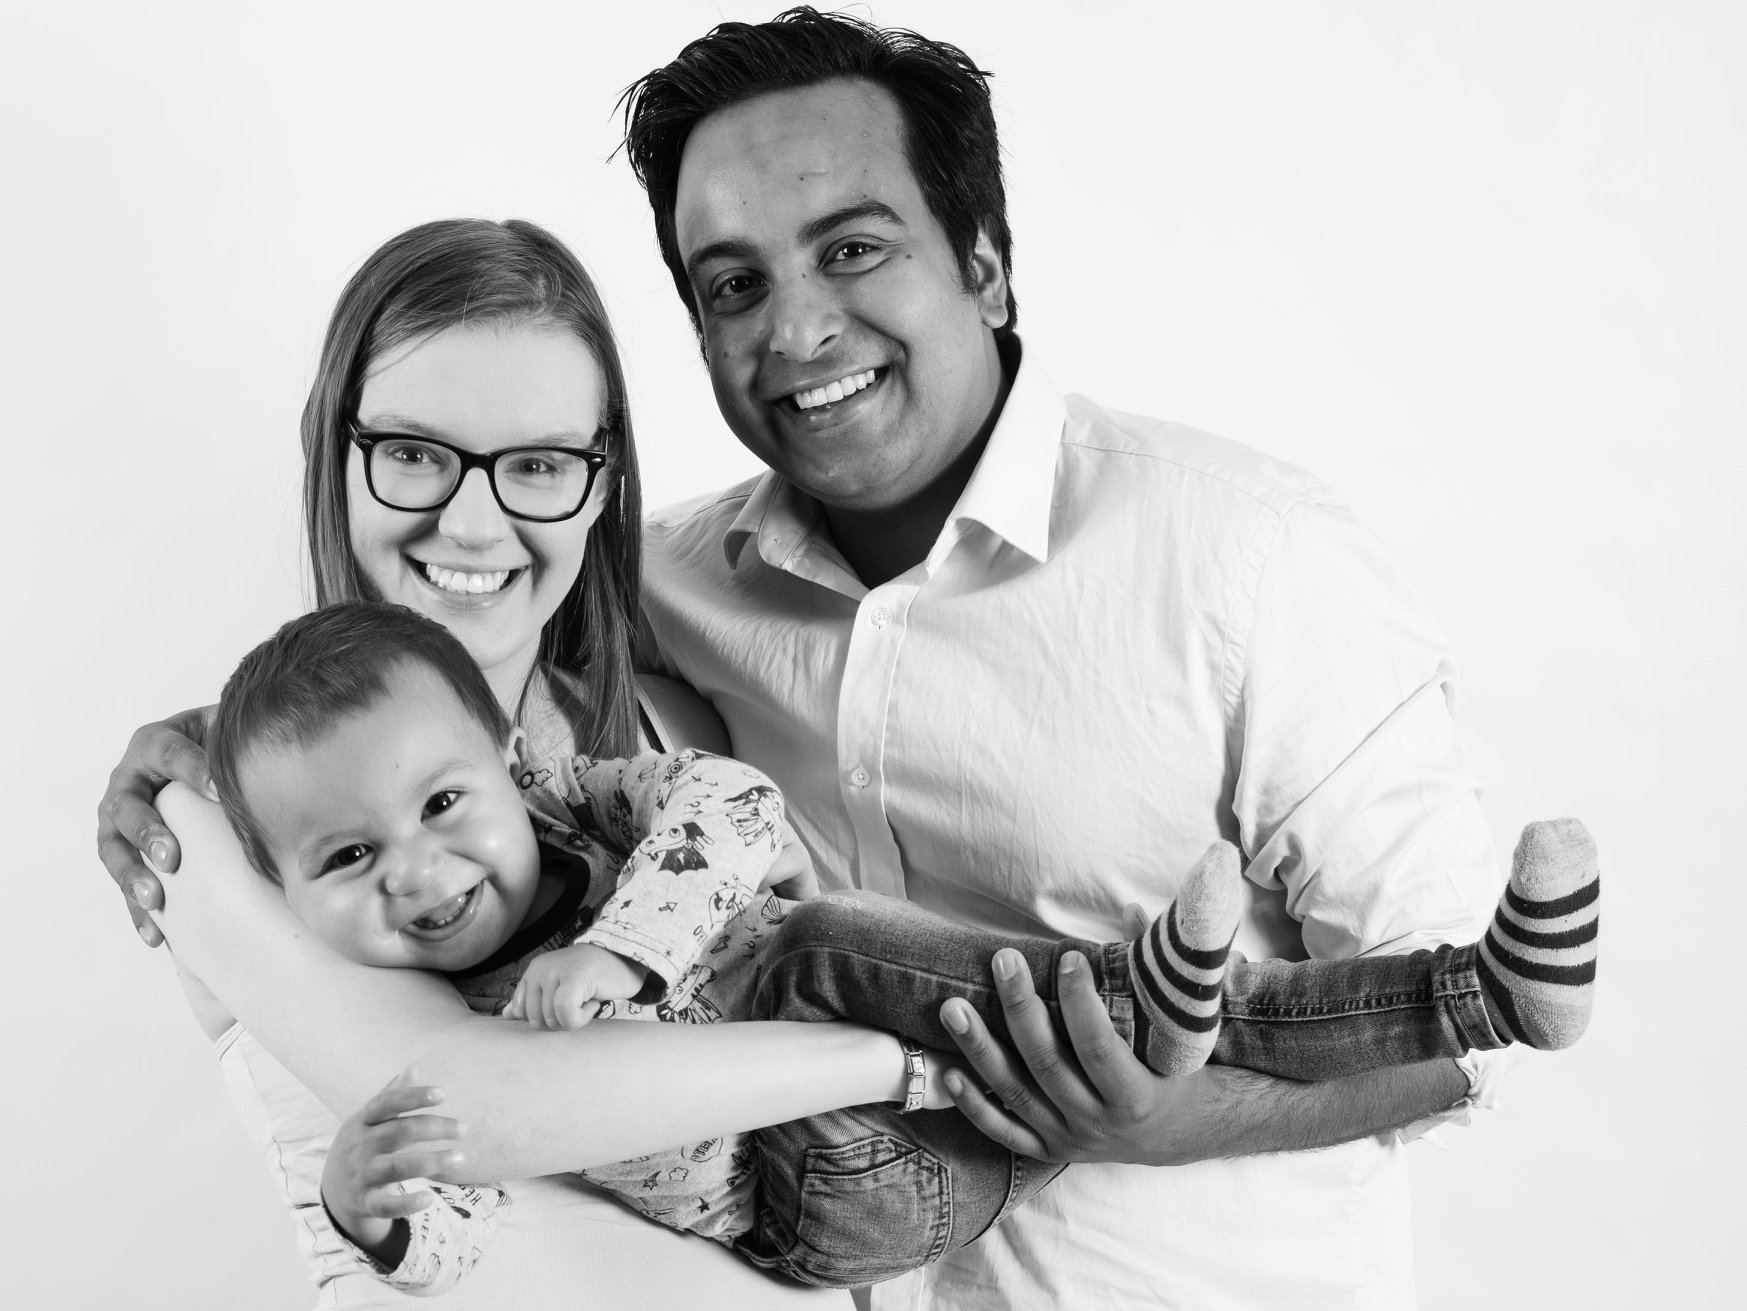 TRIPLE PACK DEAL (MATERNITY, NEWBORN & CAKE SMASH) - All three photoshoots for the amazing price of £400